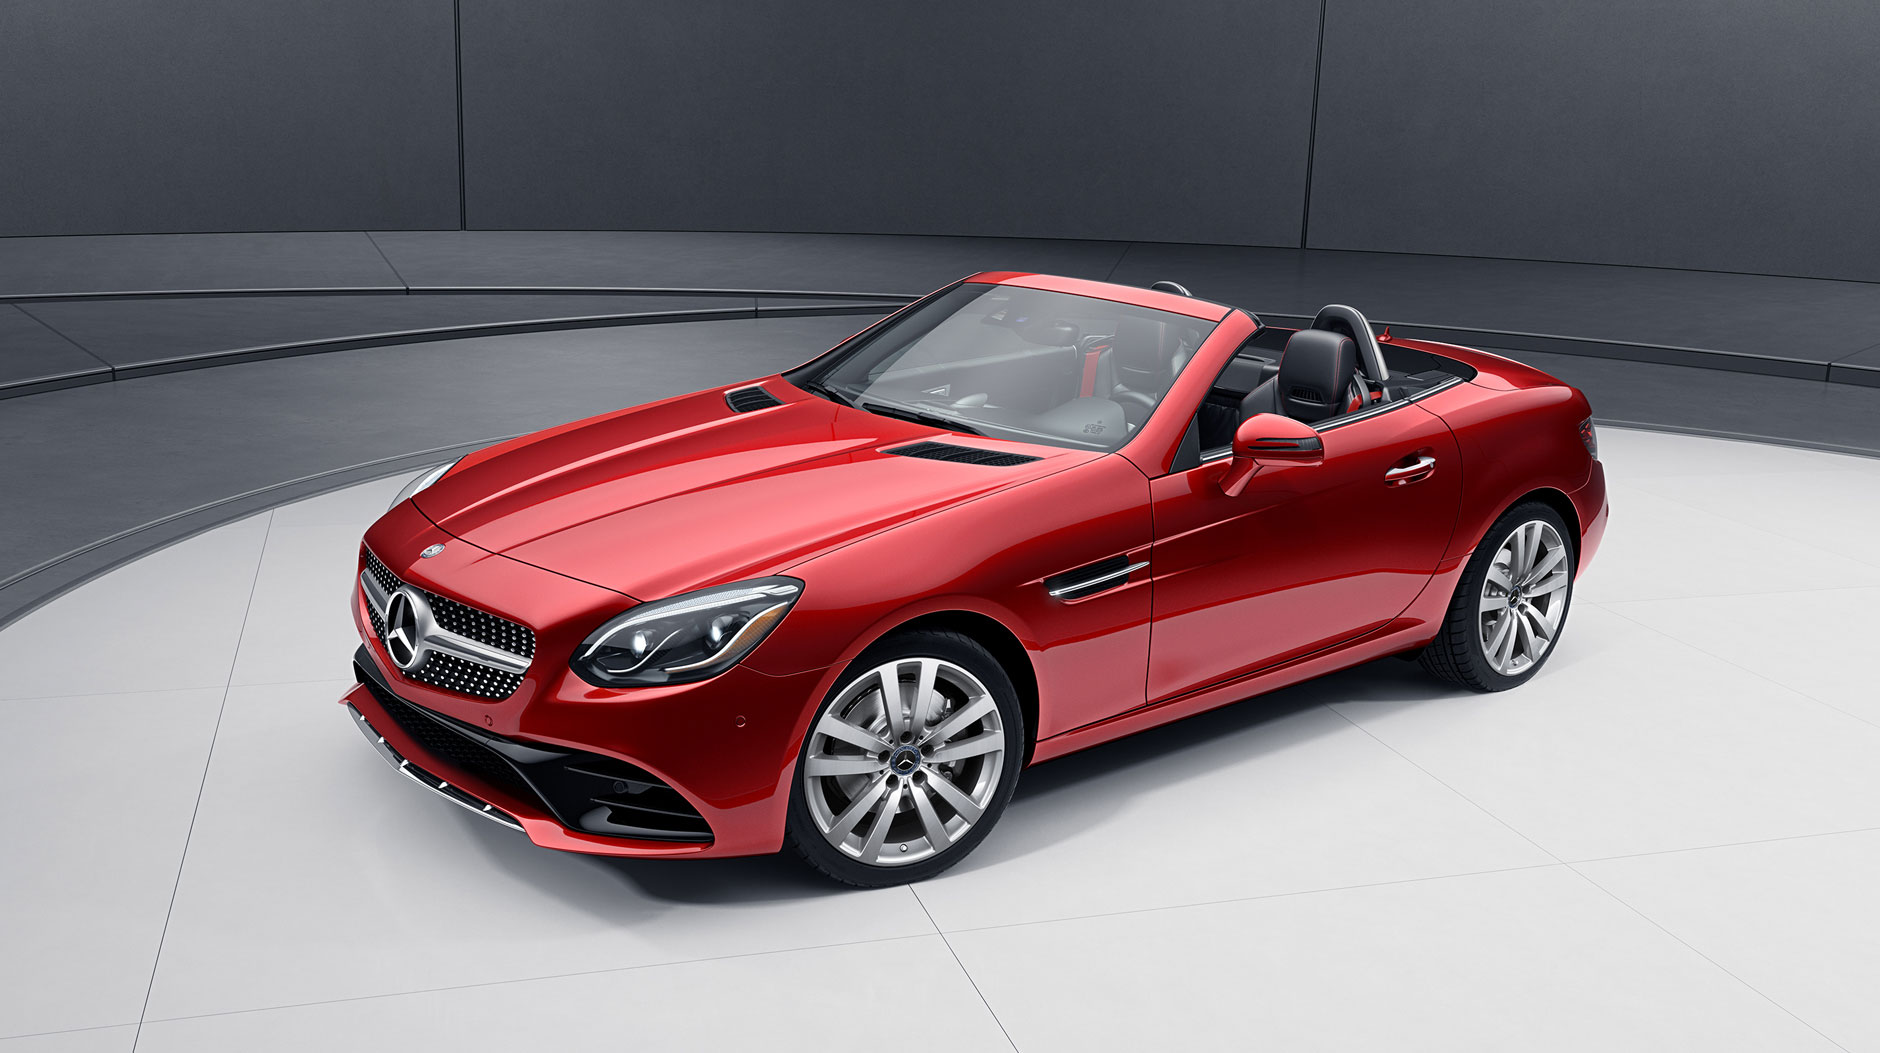 The Slc 300 Replaces Slk Joining Mid Ranged C Family Of Mercedes Lineup Alongside Cl Sedan And Glc Suv